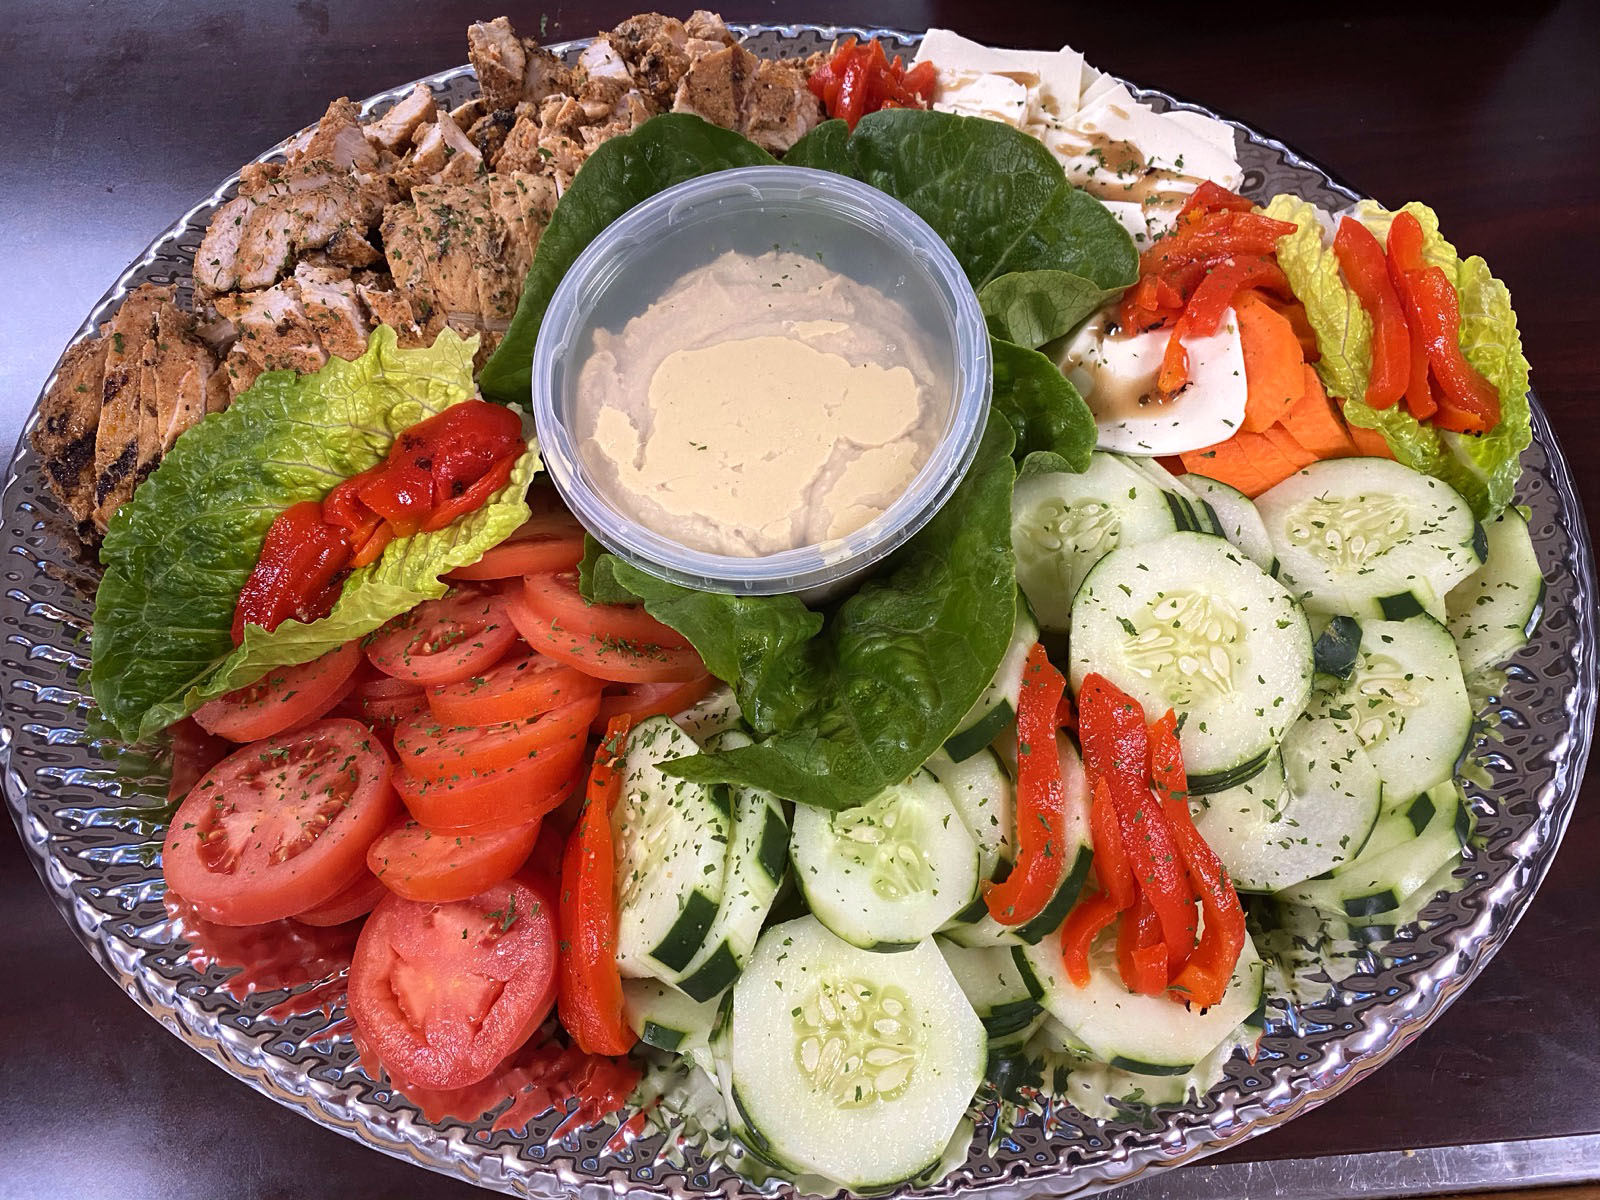 A chicken and vegetable Greek platter with hummus in the center